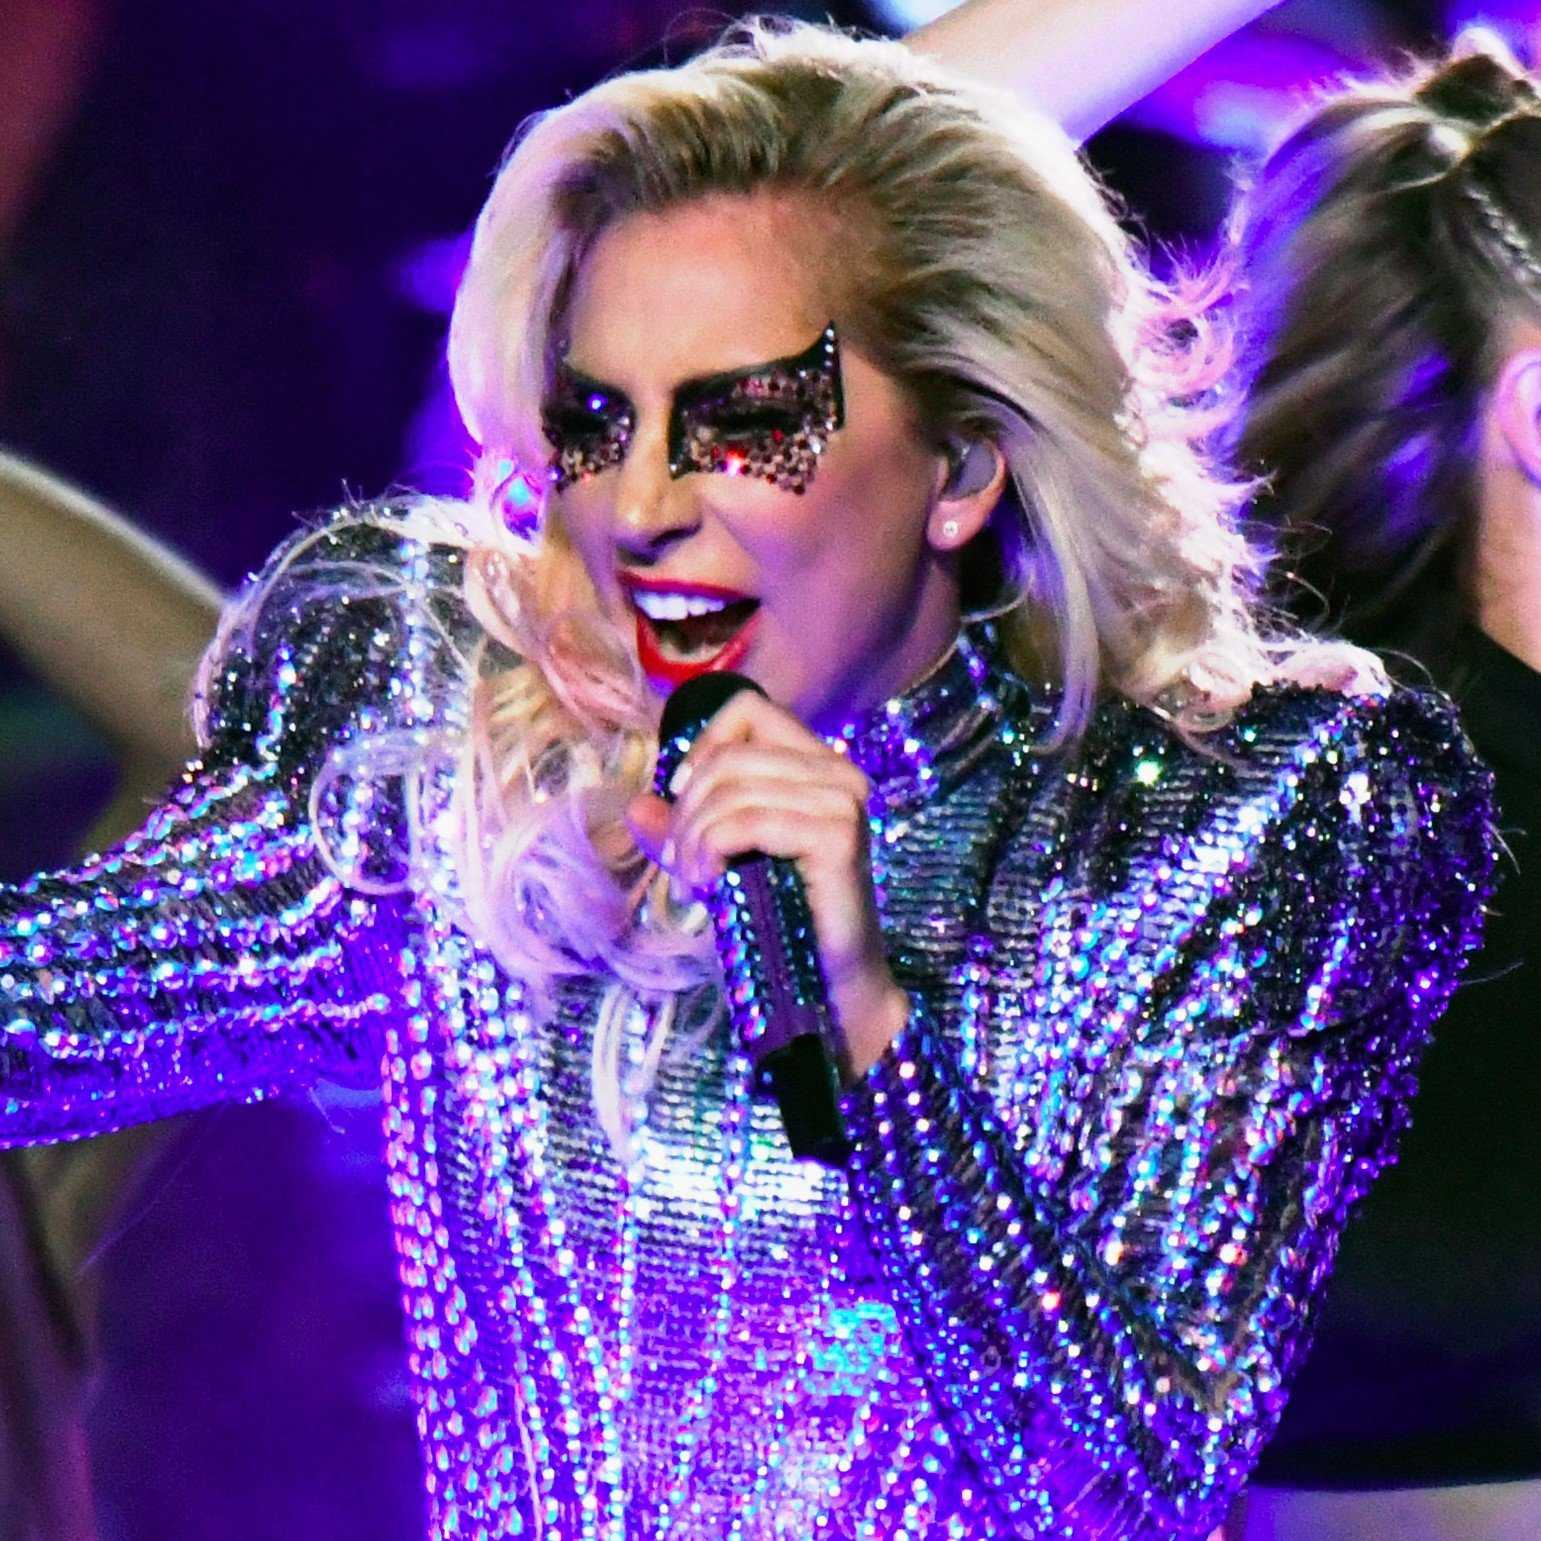 Lady Gaga was the selected performer at the 2017 Superbowl.